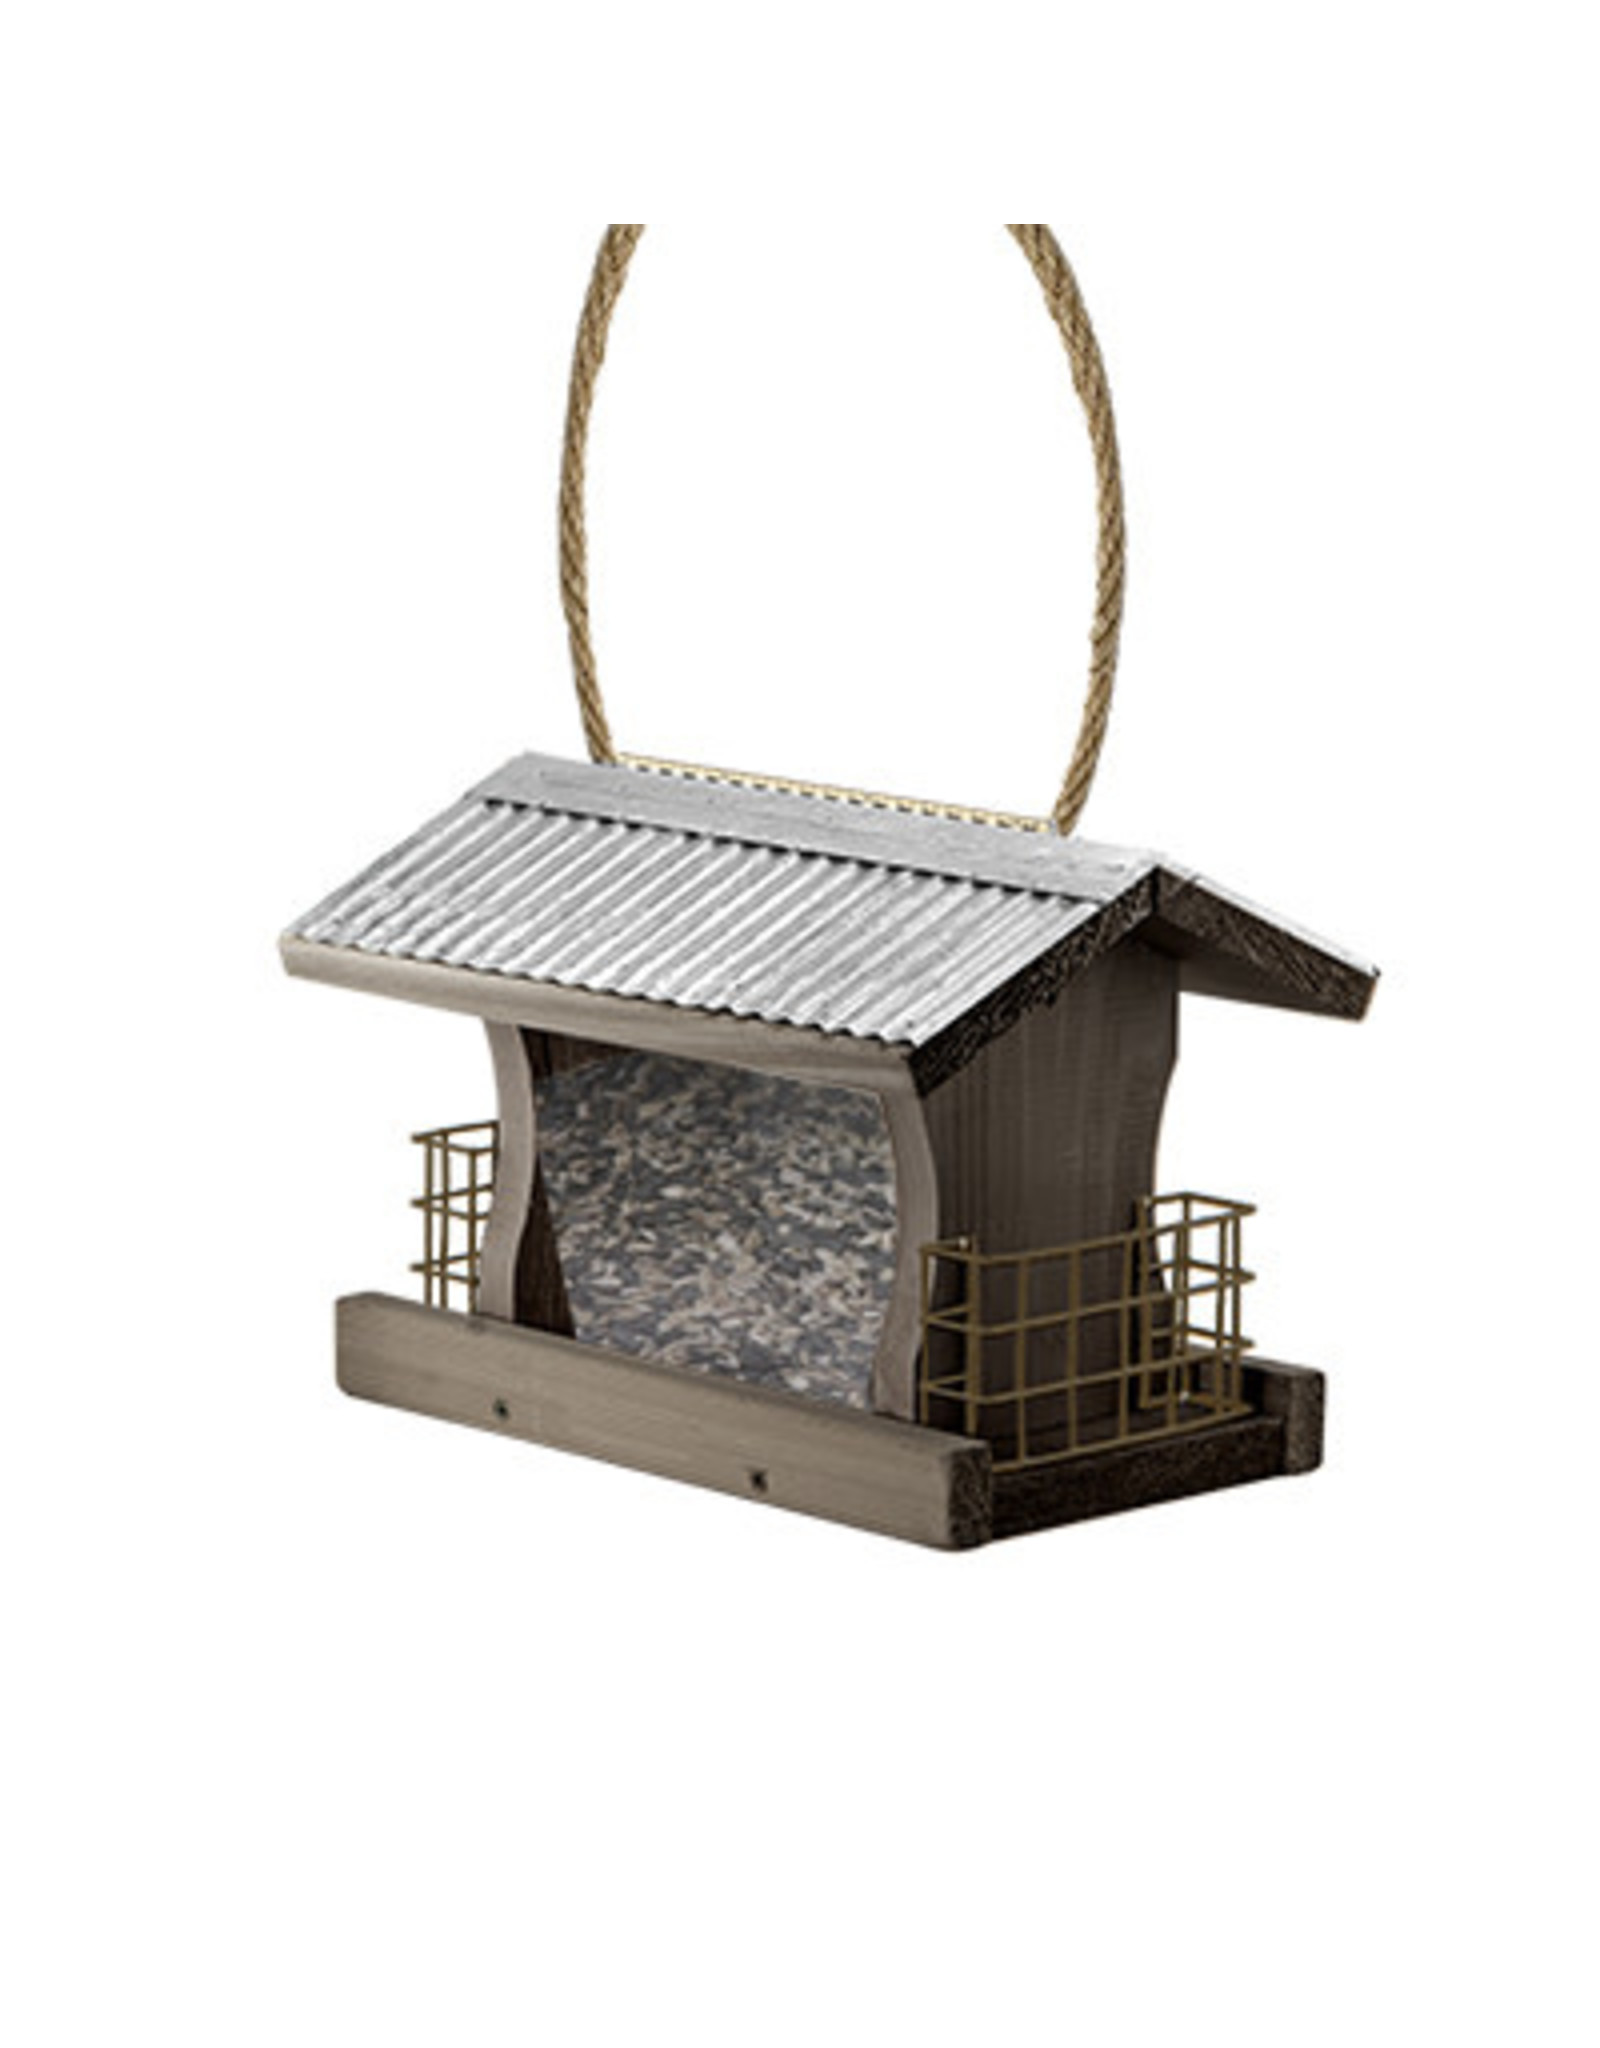 Panecea WK28709 Rustic Farmhouse Ranch with Suet Cages